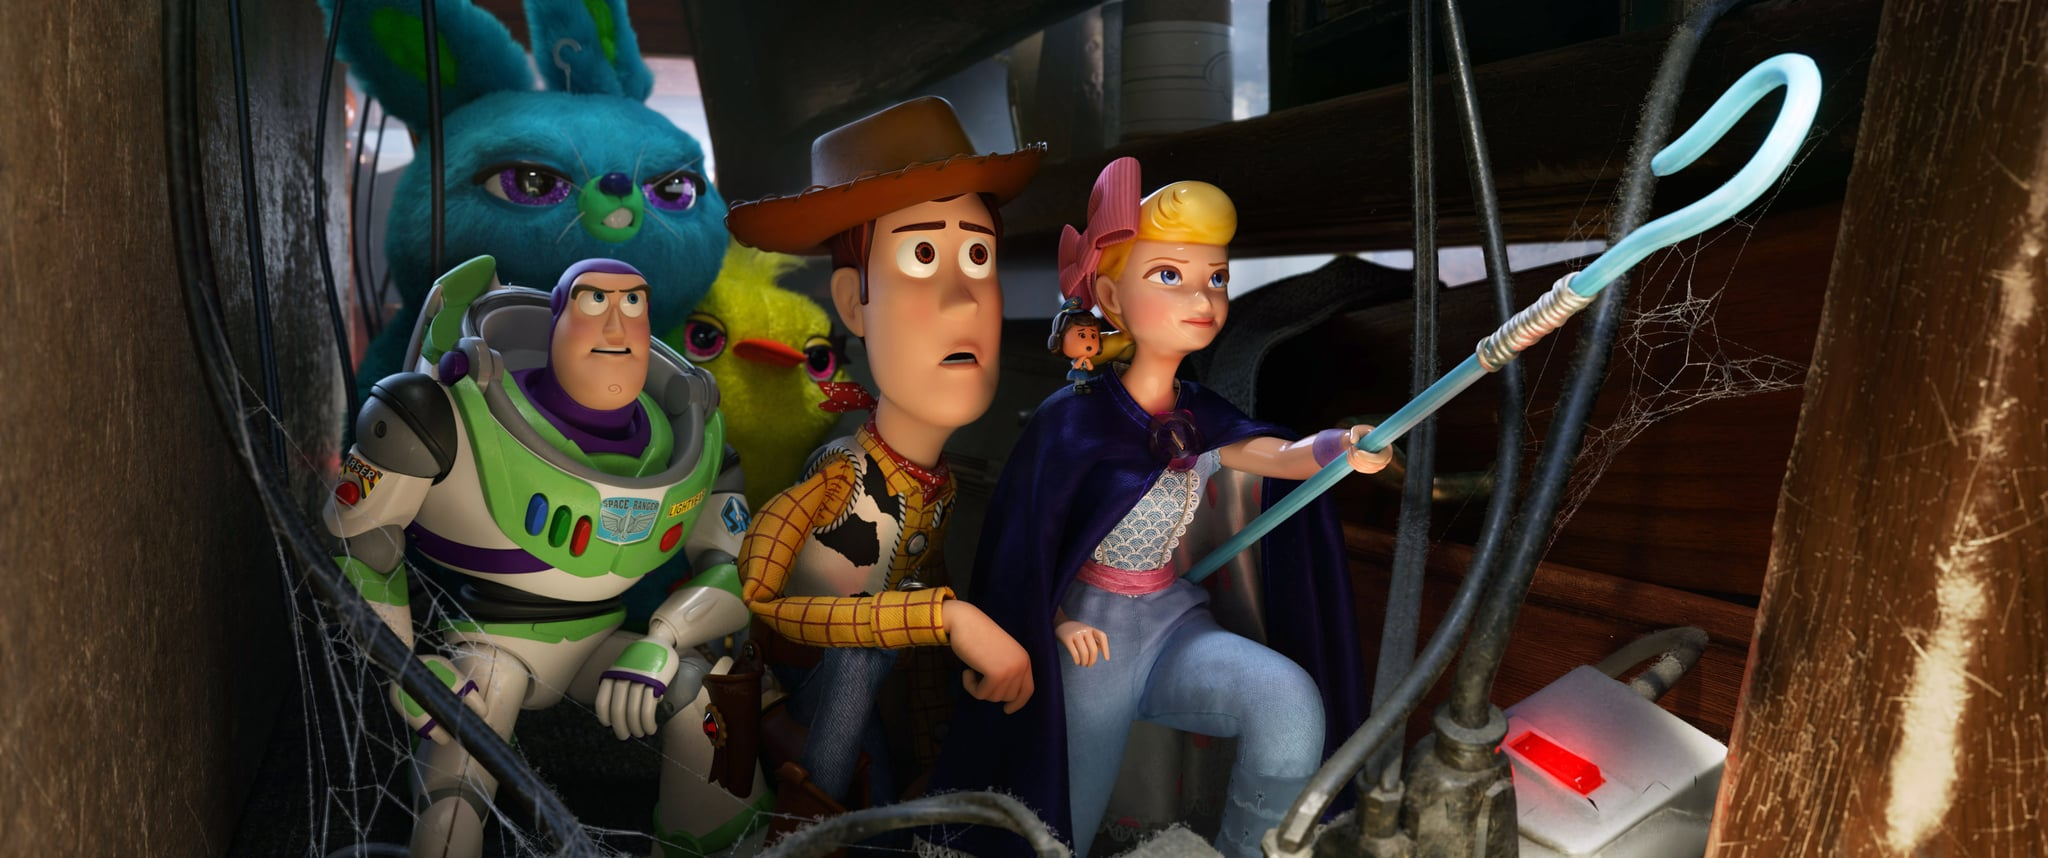 TOY STORY 4, background from left: Bunny (J. Peele), Ducky (Keegan-Michael Key); foreground from left: Buzz Lightyear (T. Allen), Woody (T. Hanks), Bo Peep (A. Potts), 2019.  Walt Disney Studios Motion Pictures / courtesy Everett Collection